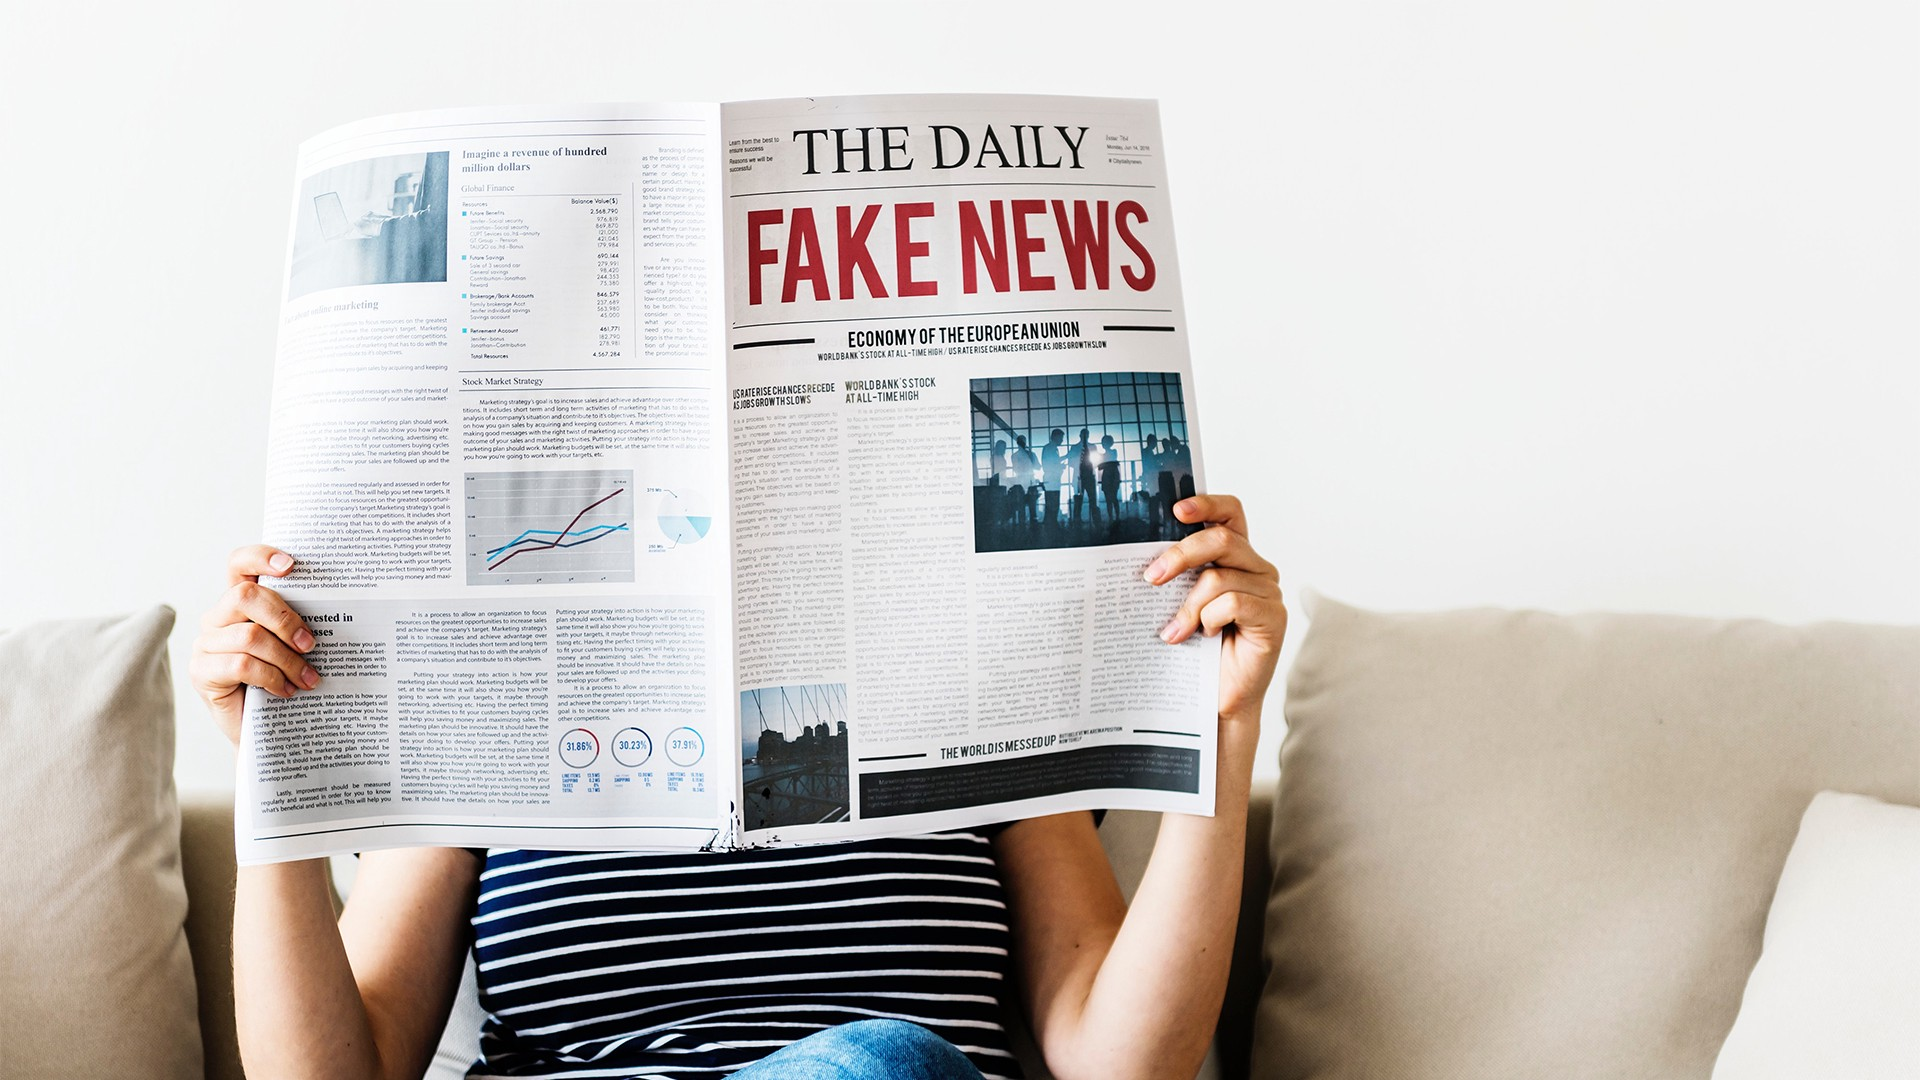 Woman sitting reading a newspaper with 'Fake News' in large bold print as the headline of the day.